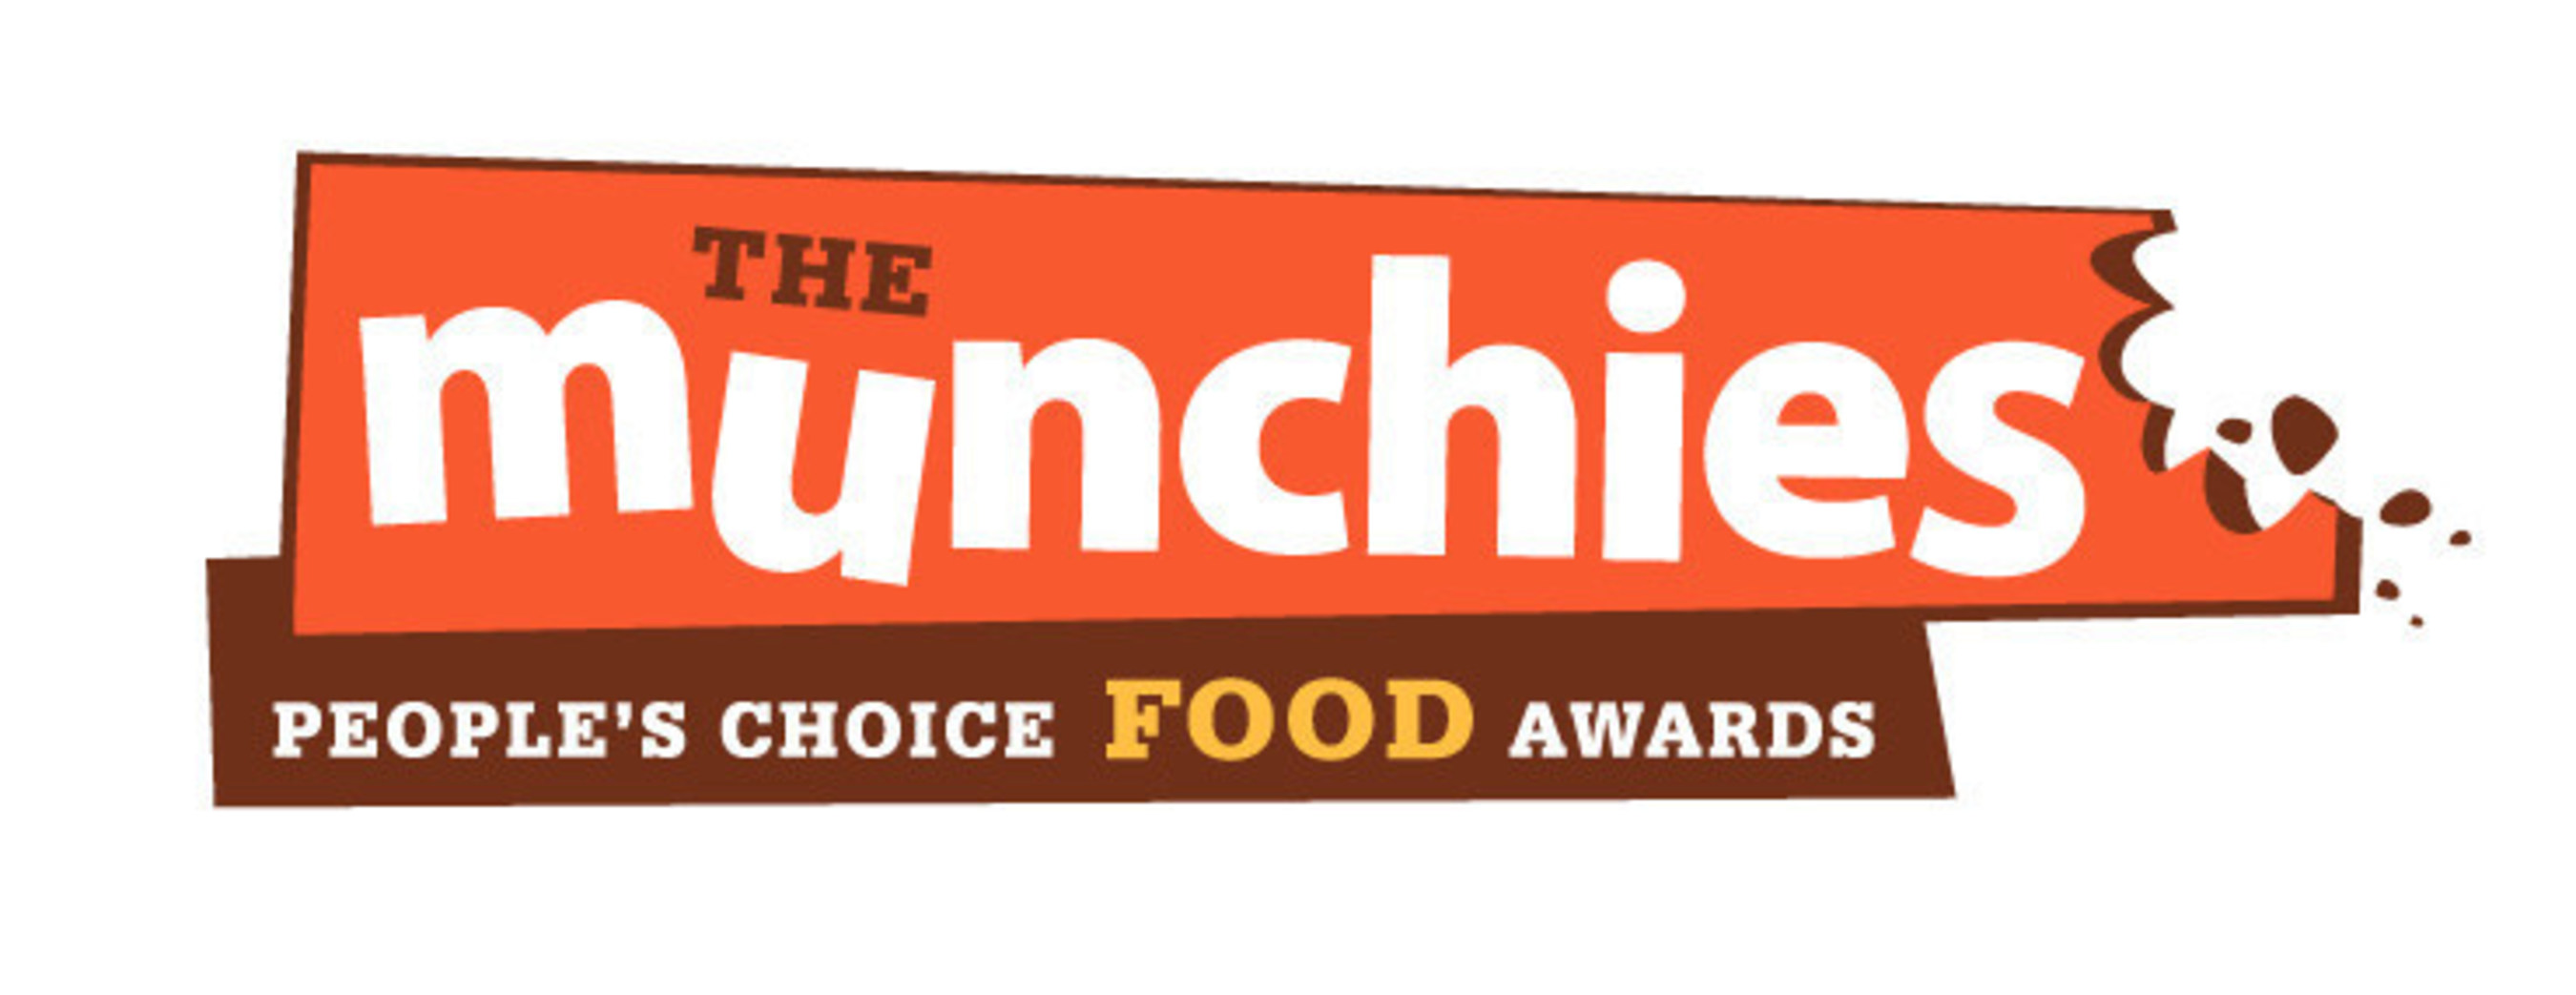 General Mills And Andrew Zimmern Announce Winners Of Fourth Annual The Munchies: People's Choice Food Awards